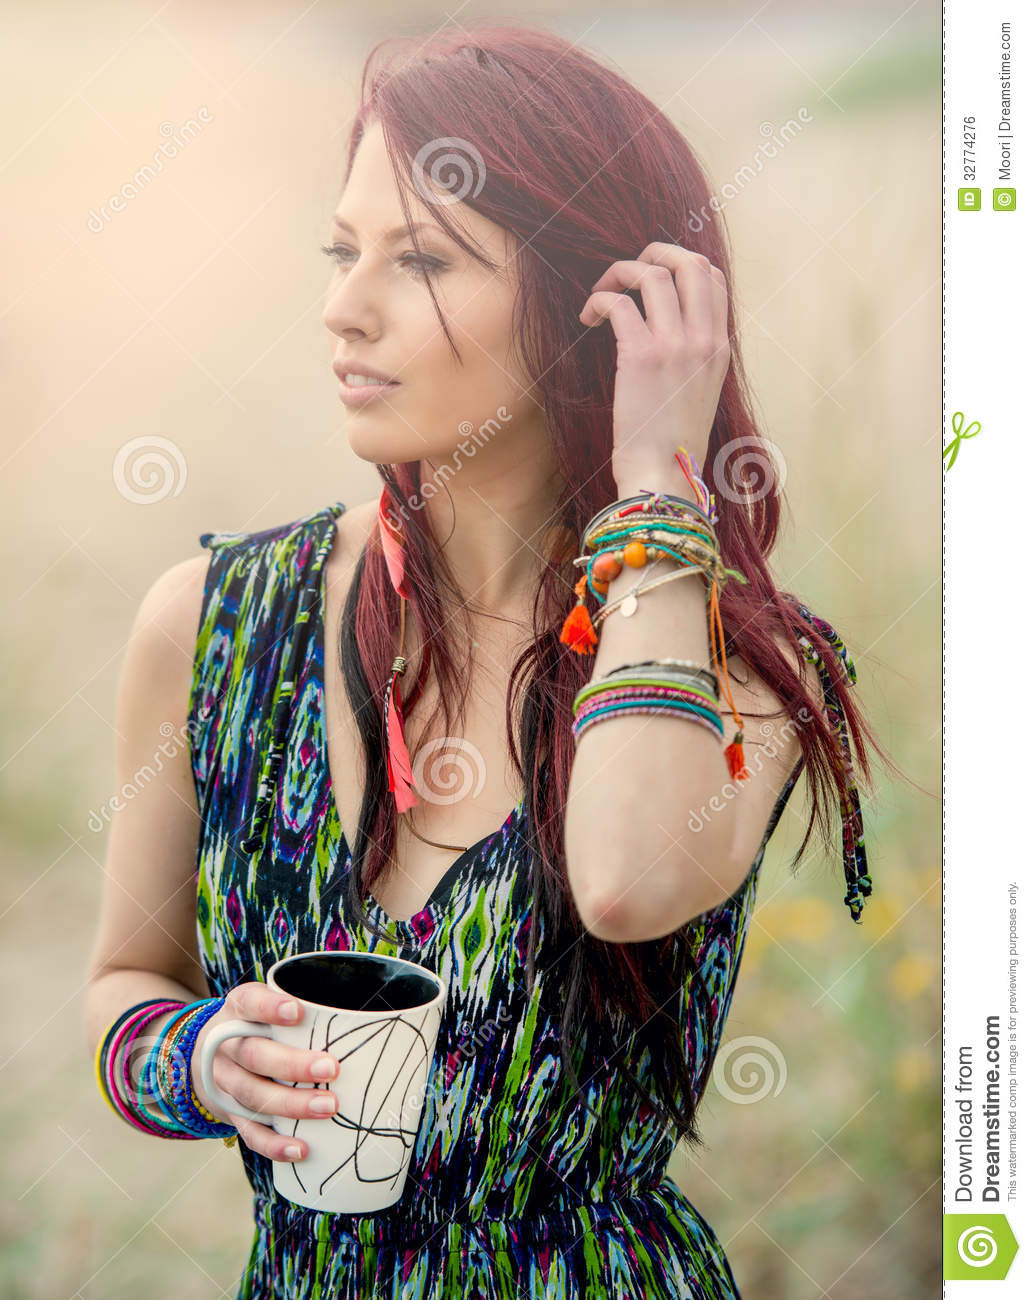 Young Hippie Girl In Boho Fashion Royalty Free Stock Image   Image